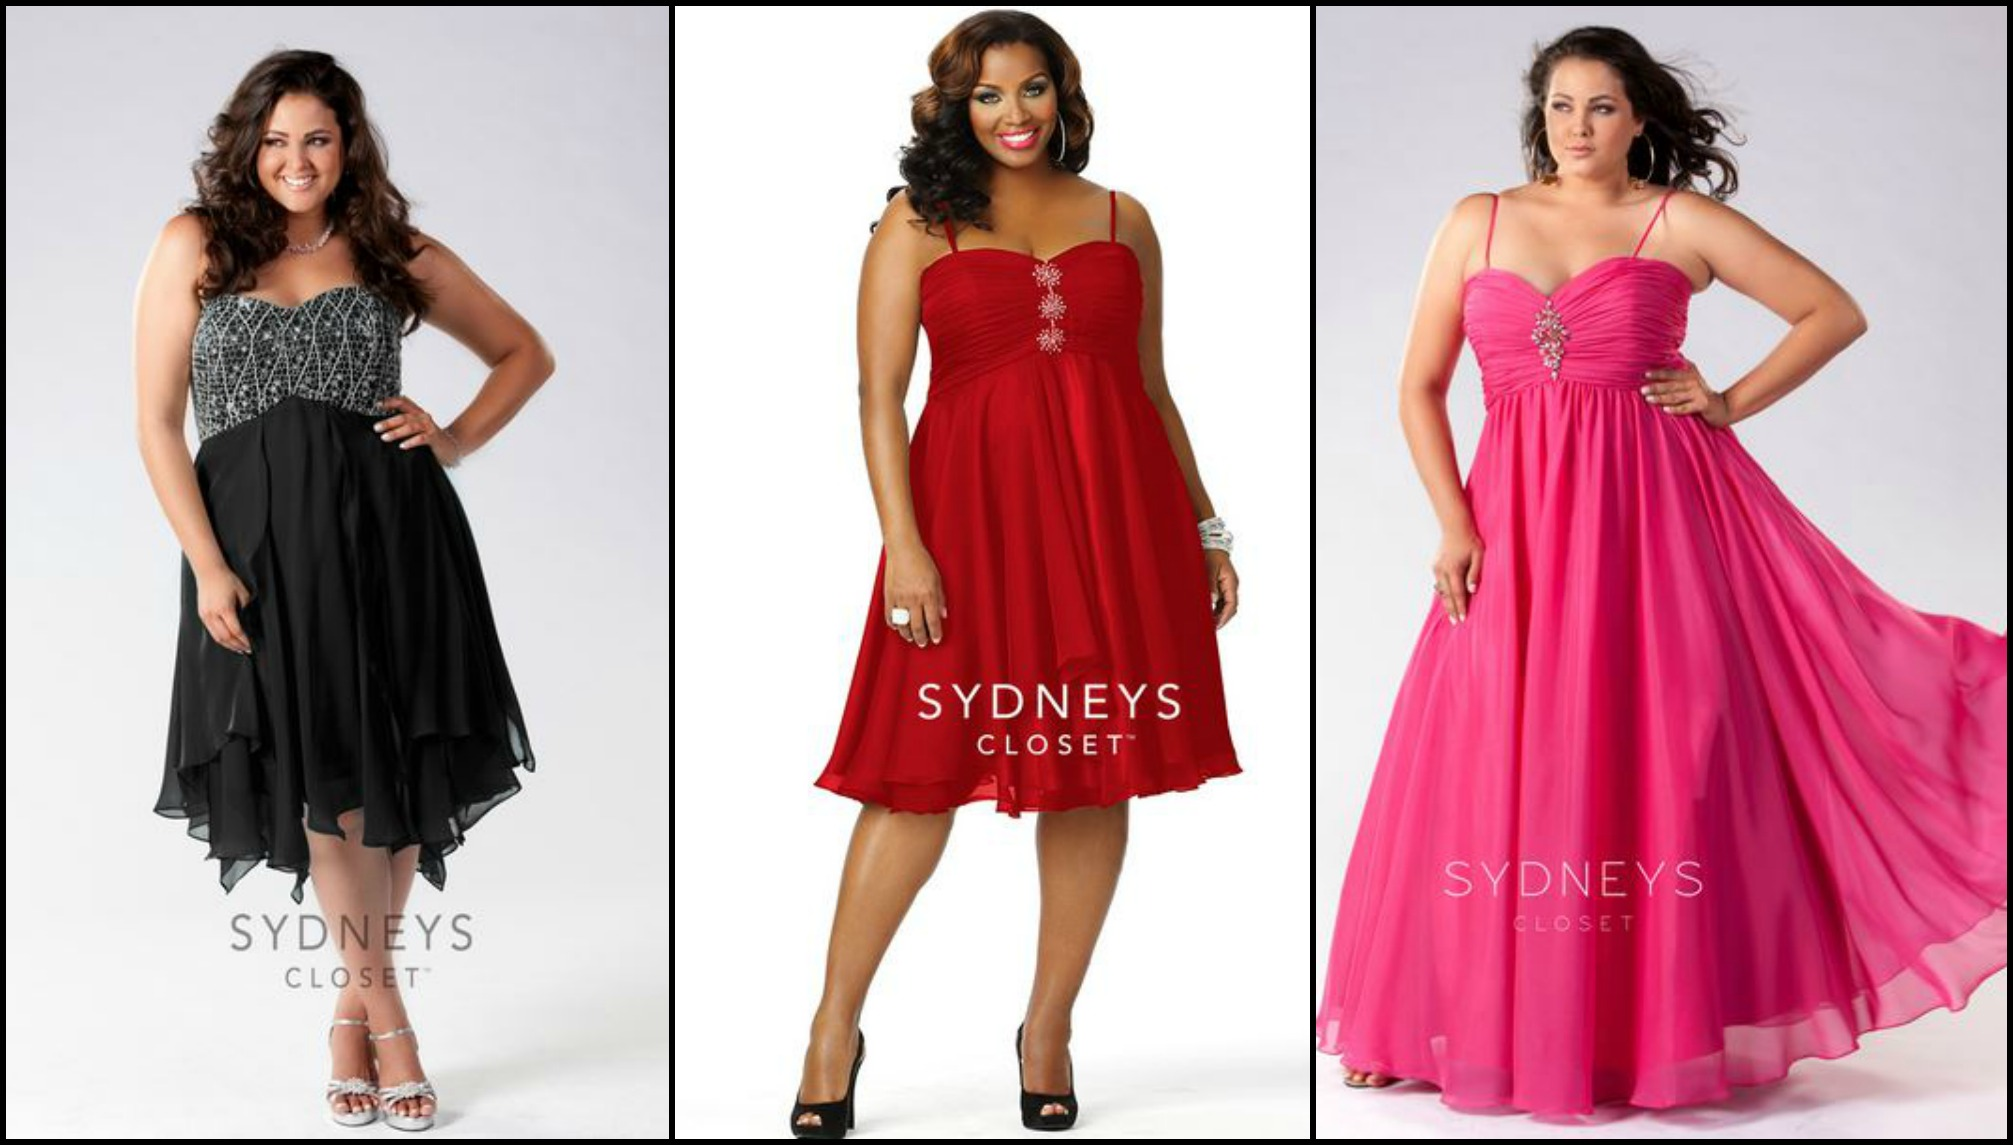 Plus Size Dresses For Special Events, Parties, Prom, & More ...